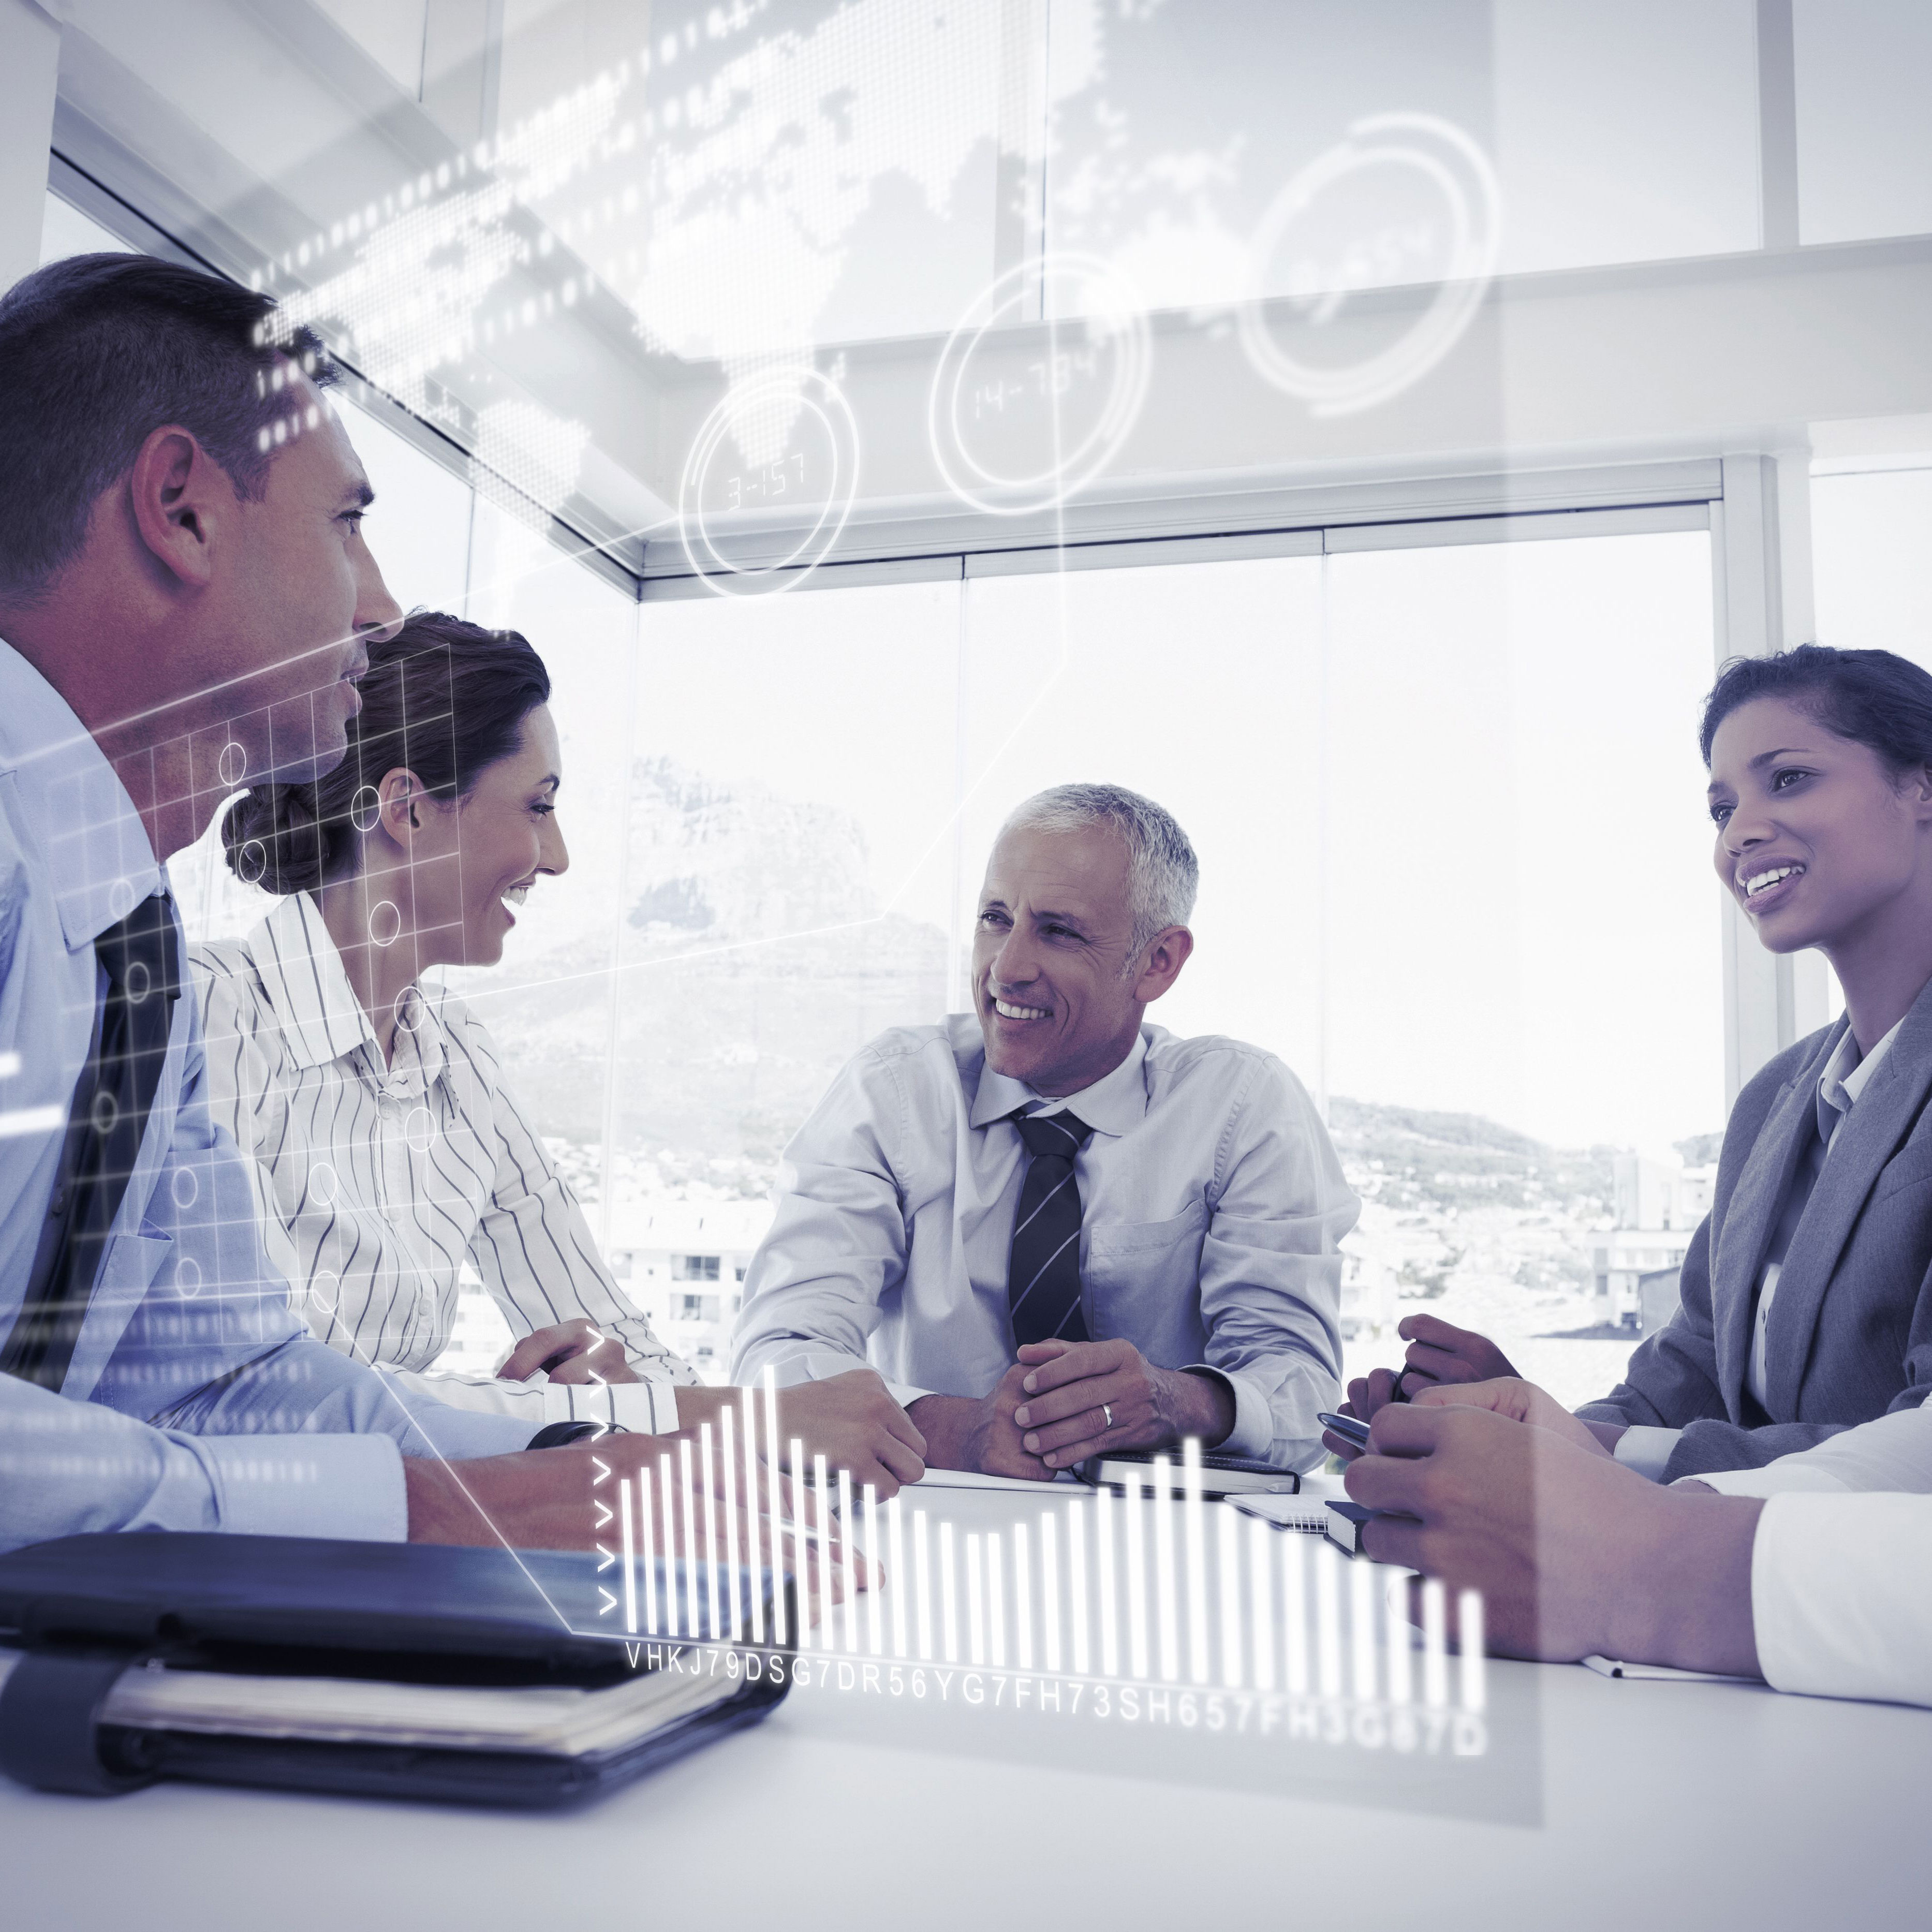 What are some unique needs IT consulting needs for an Alexandria business